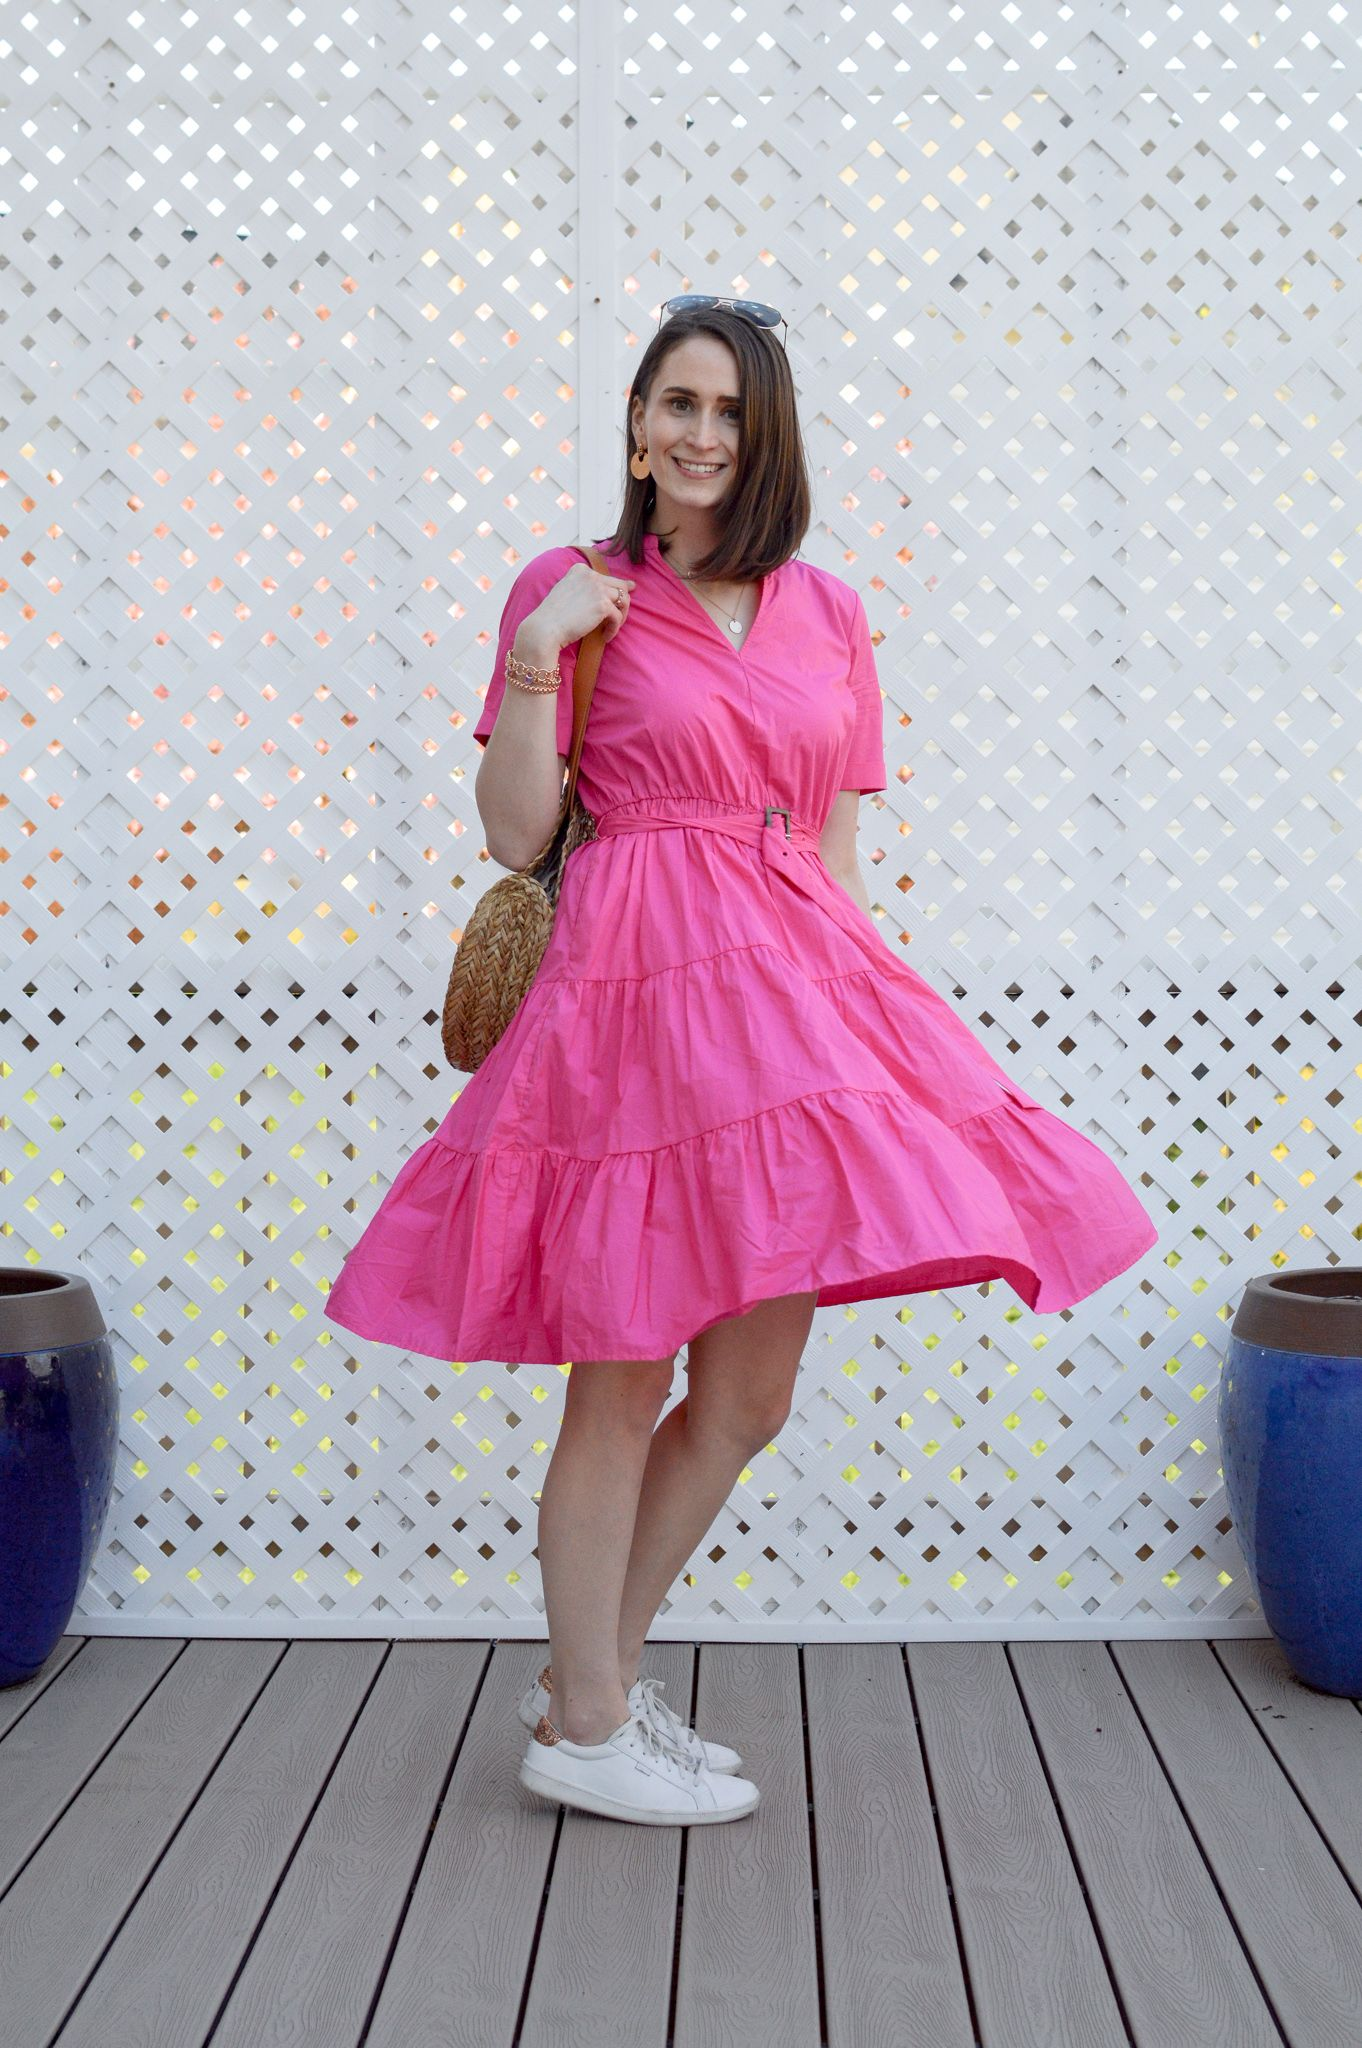 Adding Color To Your Wardrobe Breezing Through Pink Summer Dress Dresses Bright Pink Dresses [ 2048 x 1362 Pixel ]